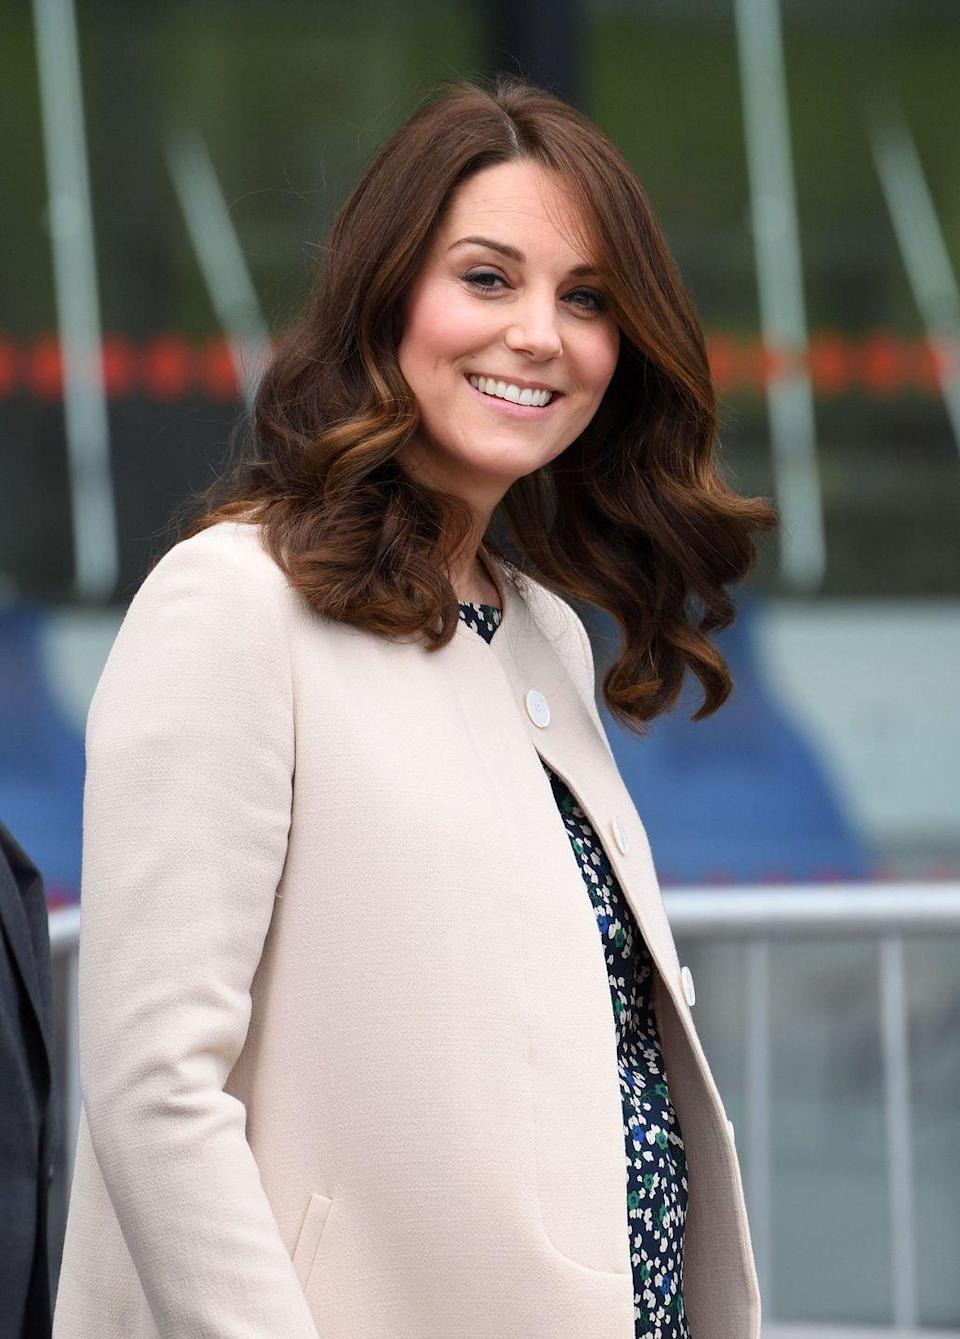 <p>Kate Middleton debuted a shorter haircut for her third pregnancy. The lob makes her signature ringlets look even bouncier than usual.</p>